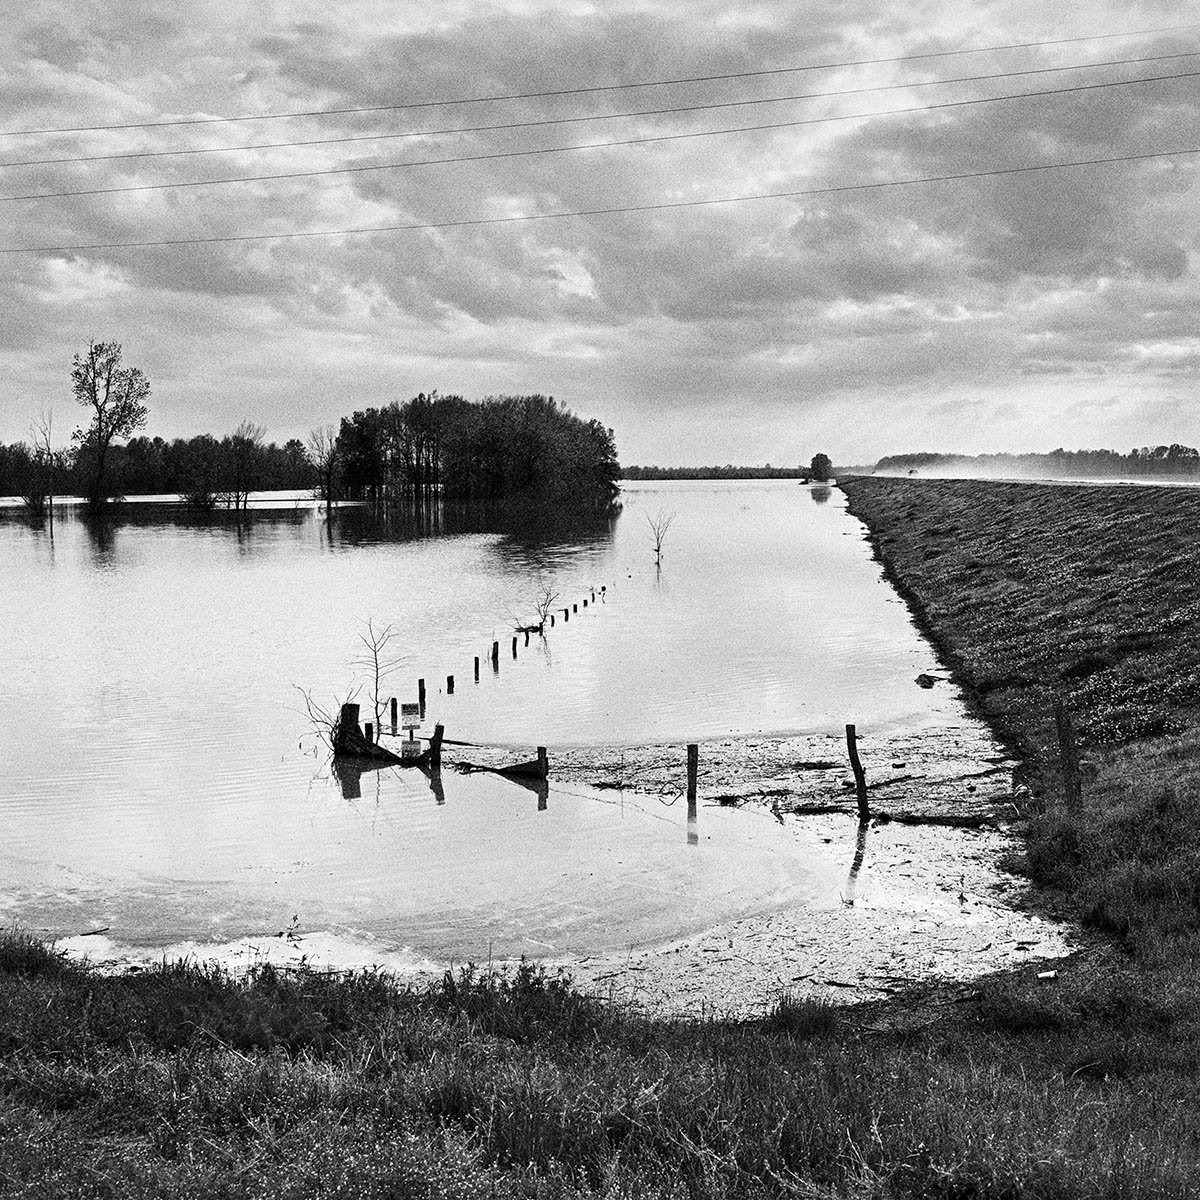 Flooded Field & Levee near Greenville, Mississippi, 1997